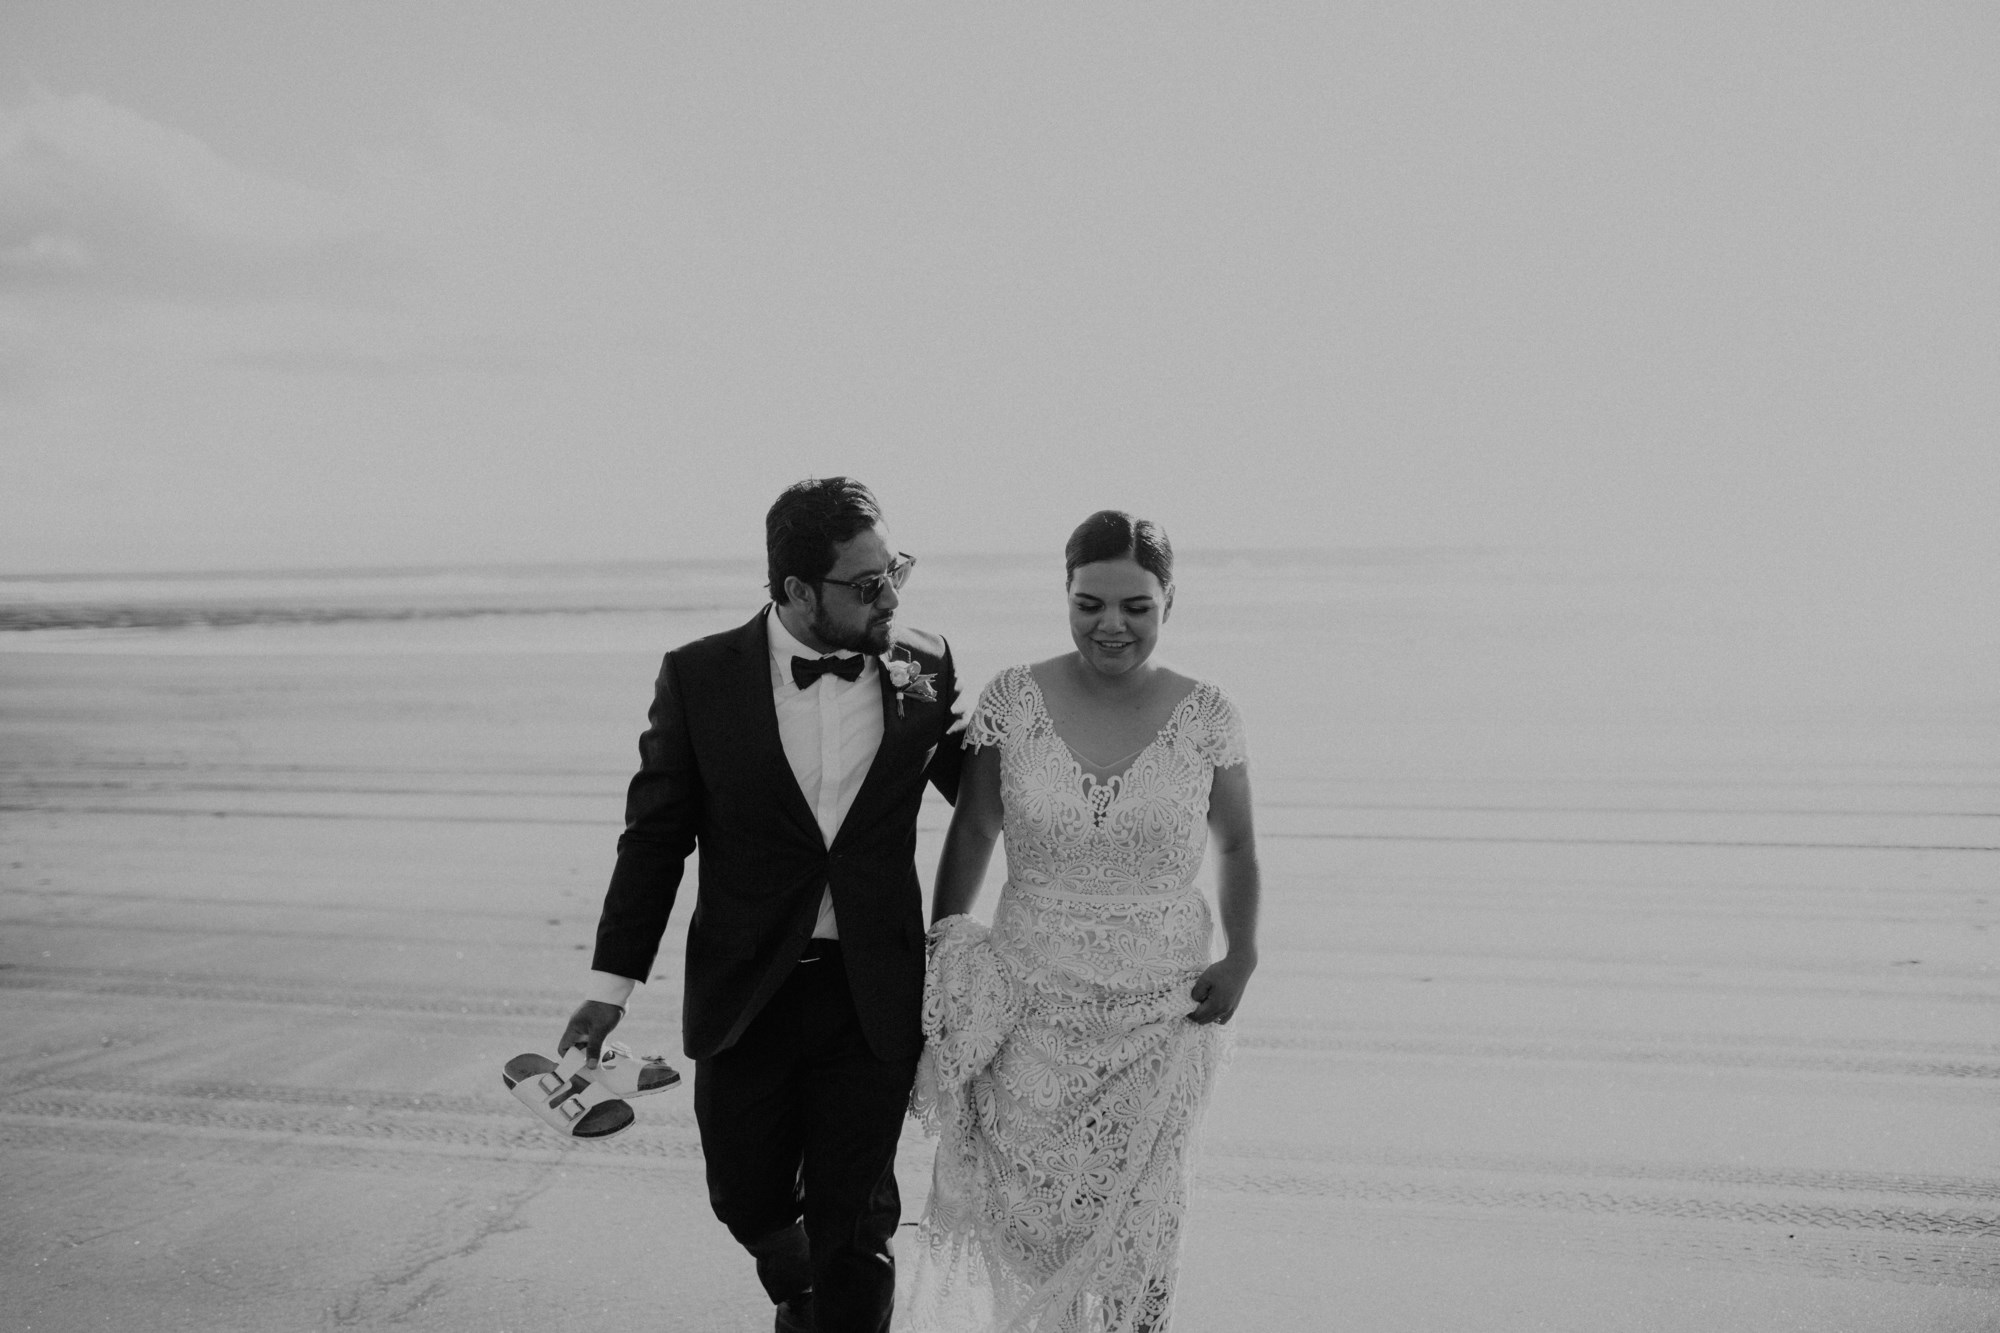 Photo of my wife and I on the BEST day of our lives. She is my biggest support system. She motivates me and allows me to be my true creative self and fuels my passion. Photo by :  Aaron Sami Photographer